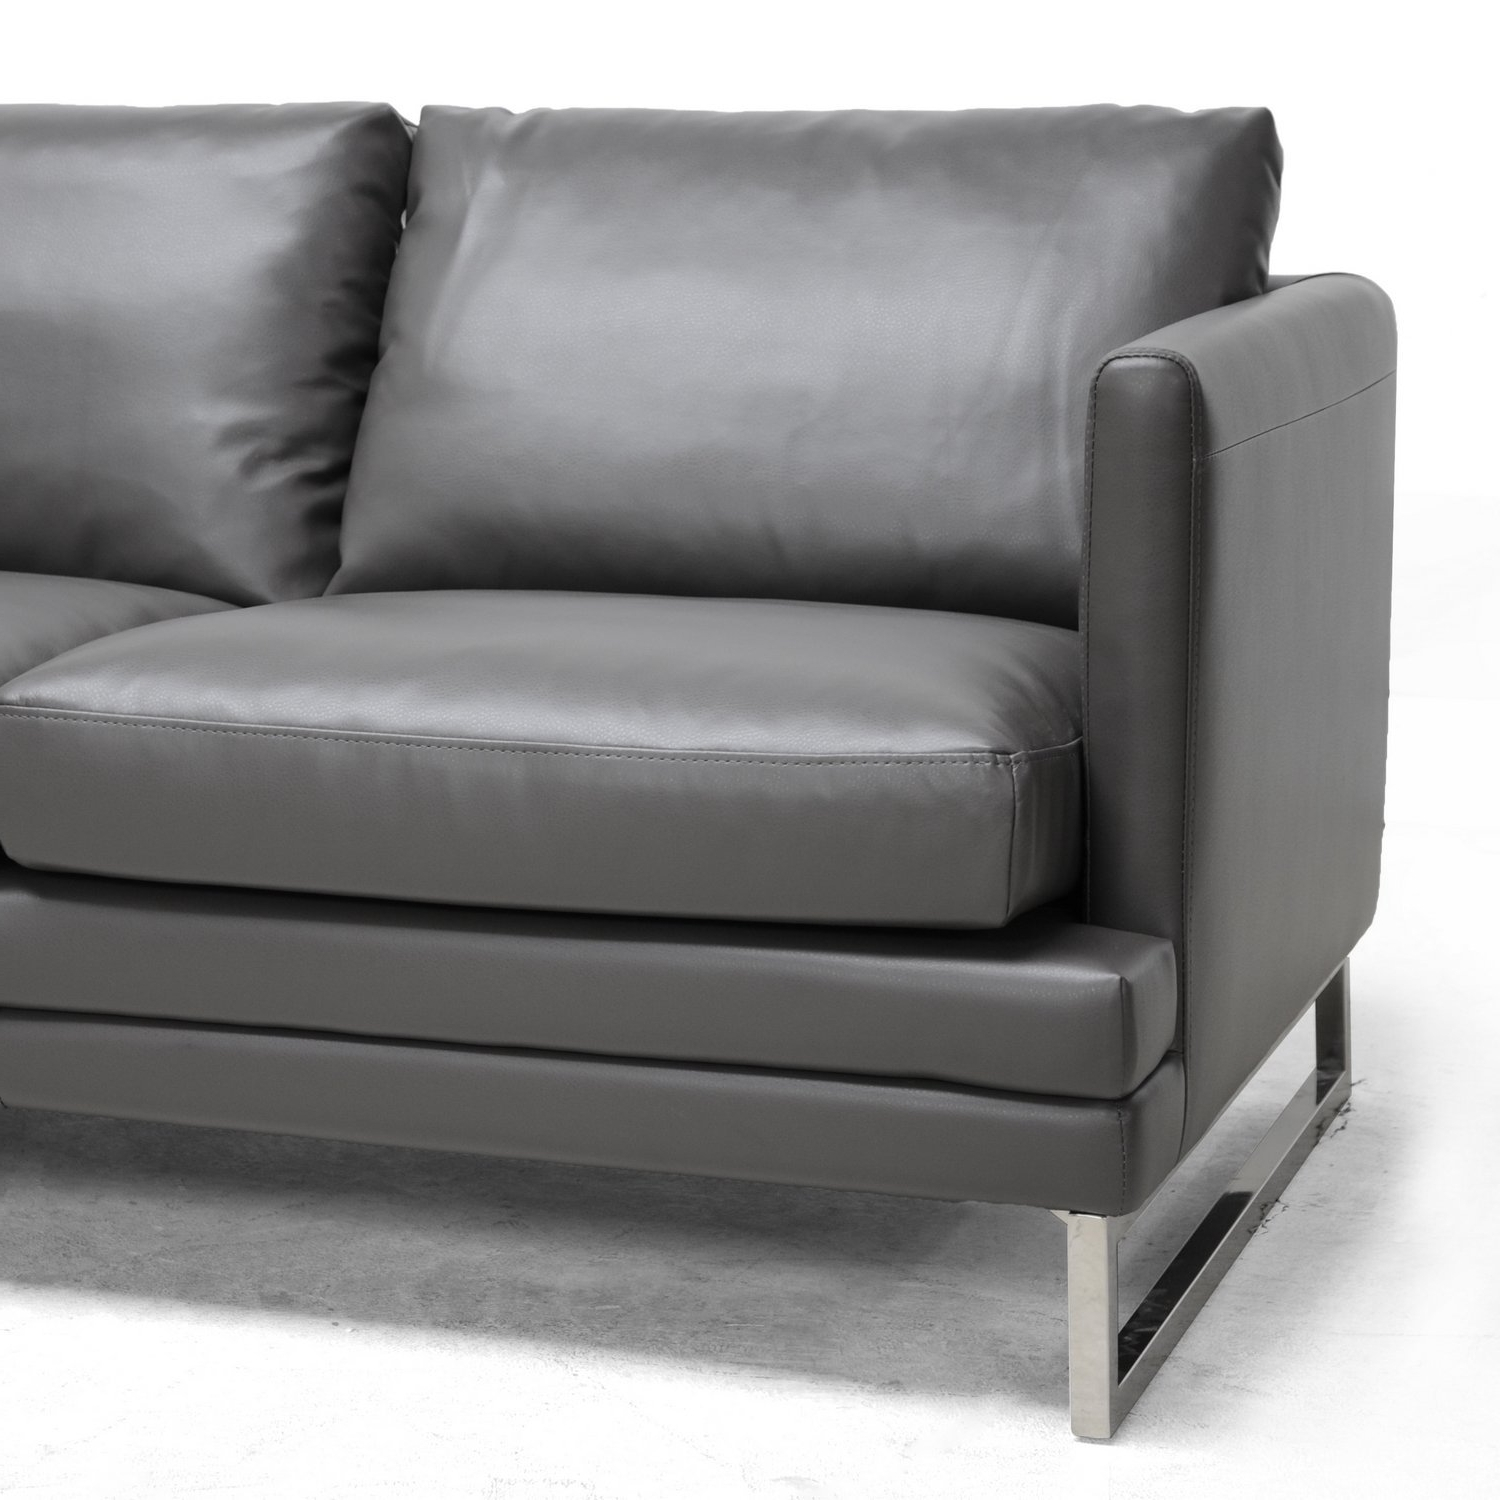 Contemporary Leather Sofas Italian Sofa Uk Modern Furniture High Intended For Preferred High Point Nc Sectional Sofas (View 9 of 20)